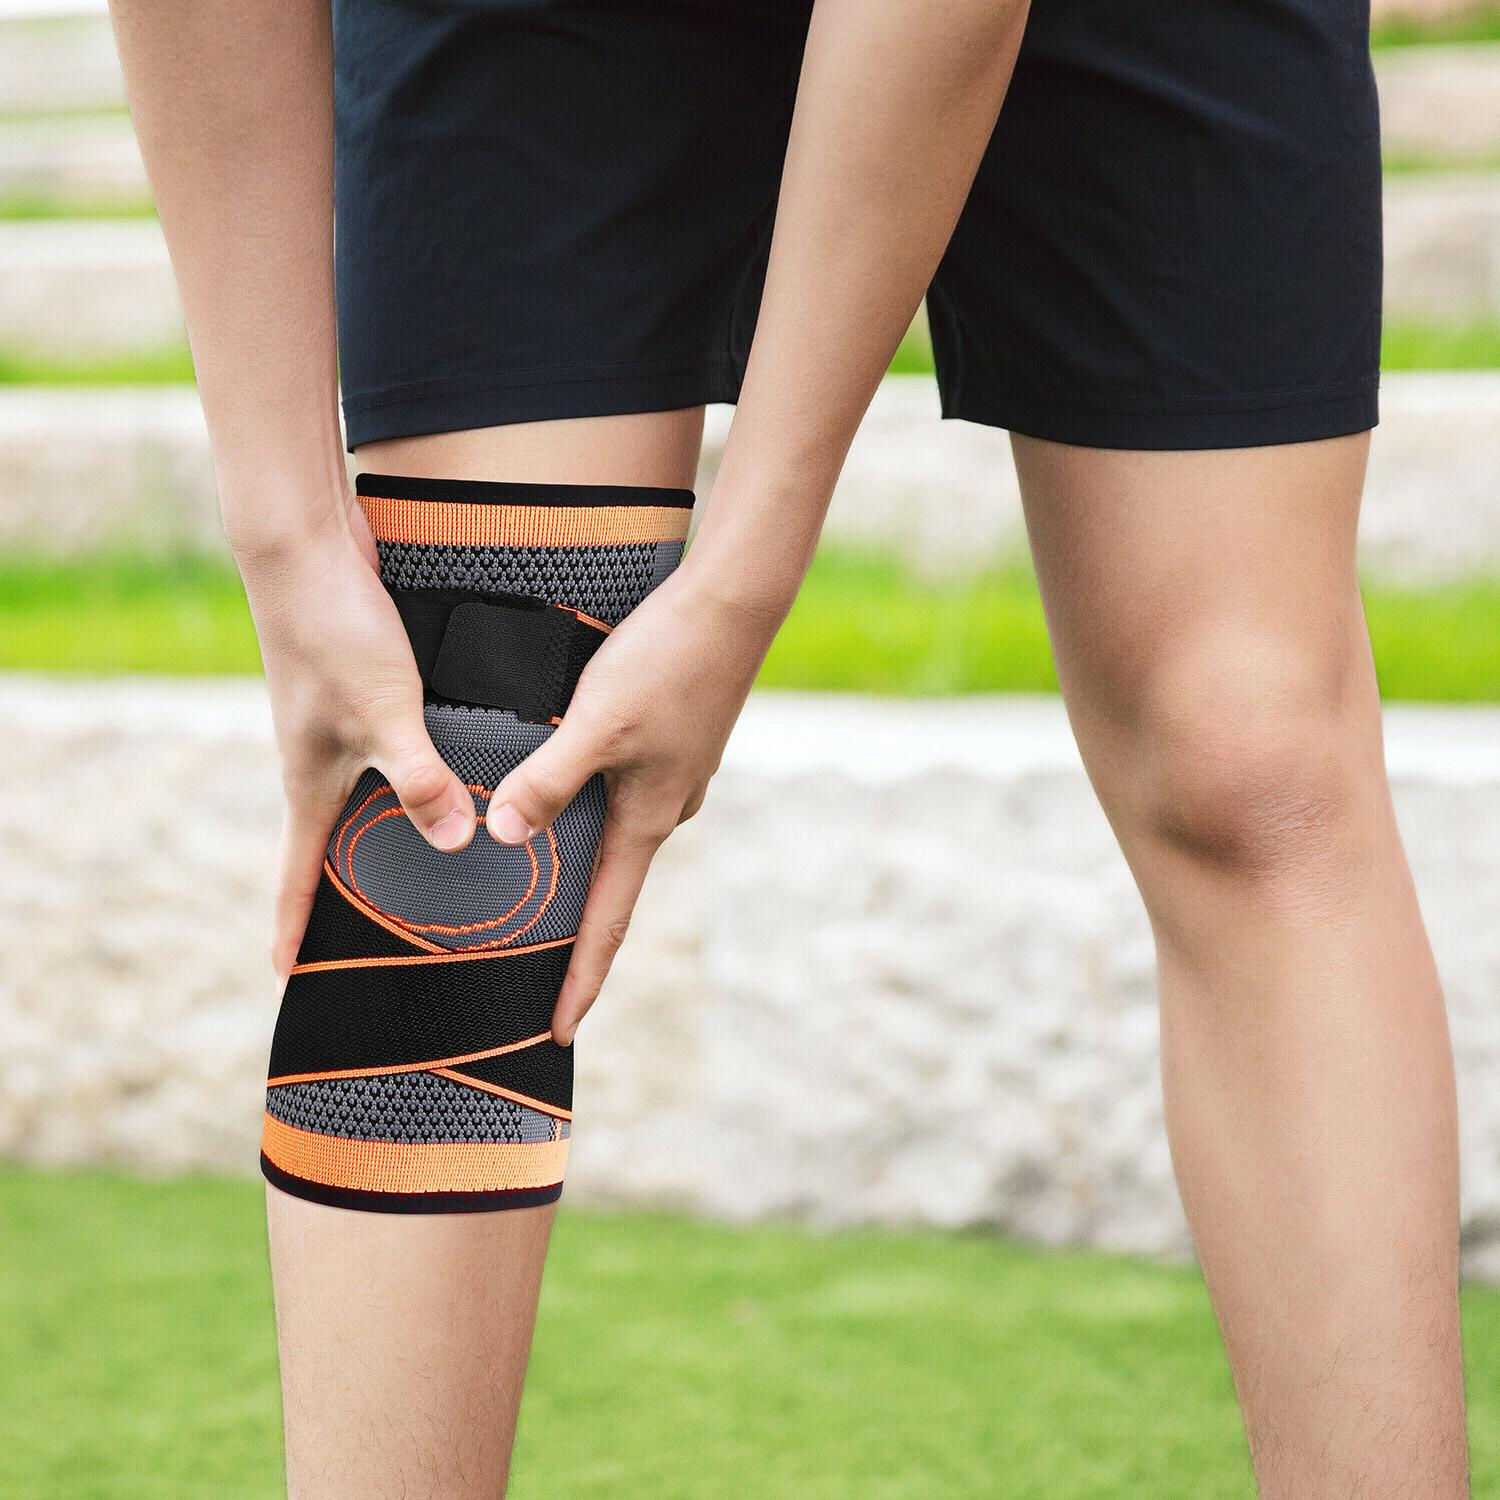 Copper Fits Sleeve Support Sports Gym